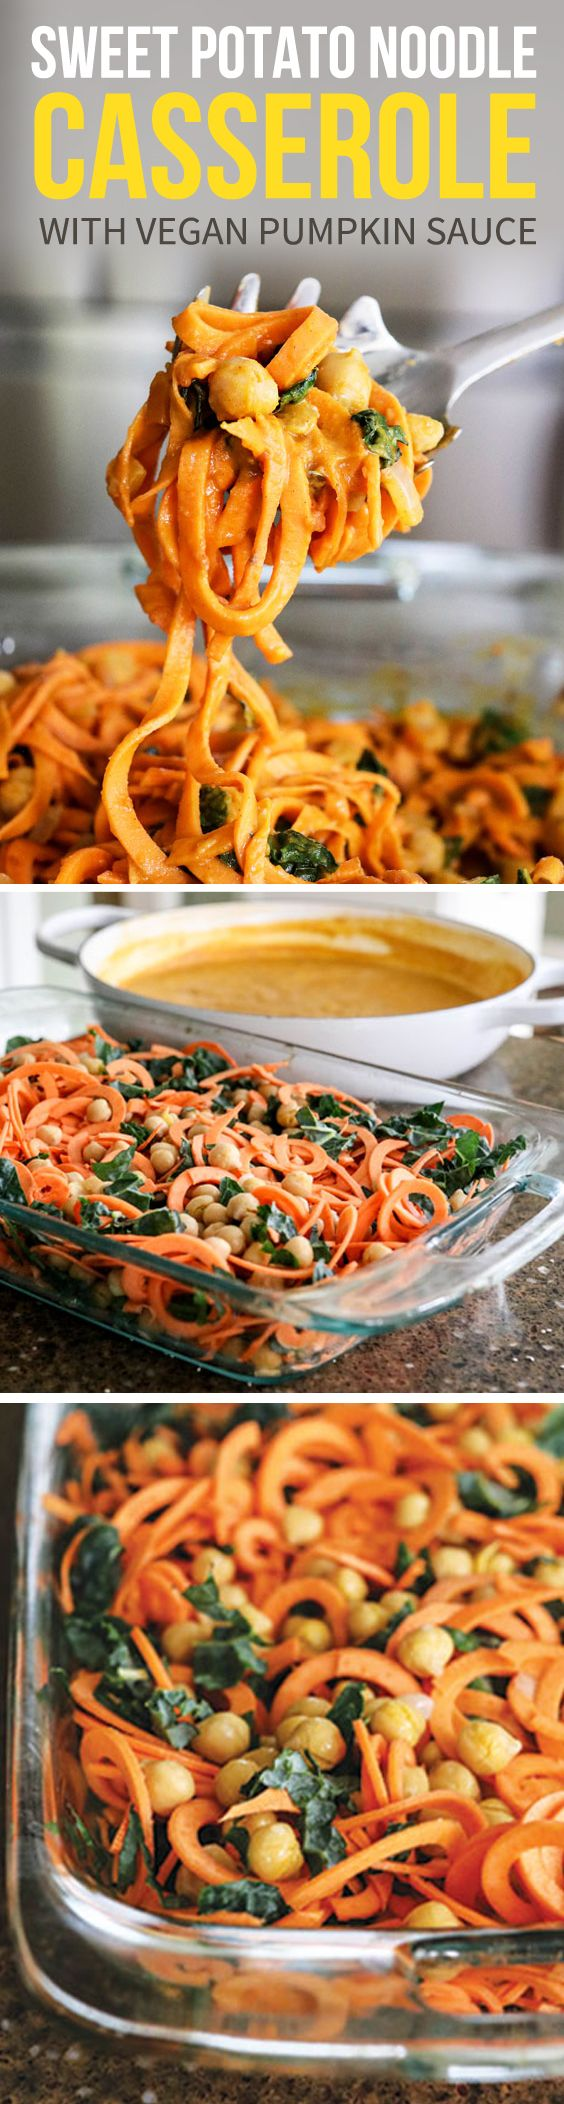 This Make-Ahead Vegan casserole makes a quick weeknight dinner or easy freezer meal. It tastes like a Fall-inspired baked spaghetti and is naturally dairy-free, gluten-free and nut-free. I add chickpeas for plat-based protein, but if you're on a Paleo diet you could swap those for high-quality meat, if you prefer. Cooking video #sponsored by Samsung.